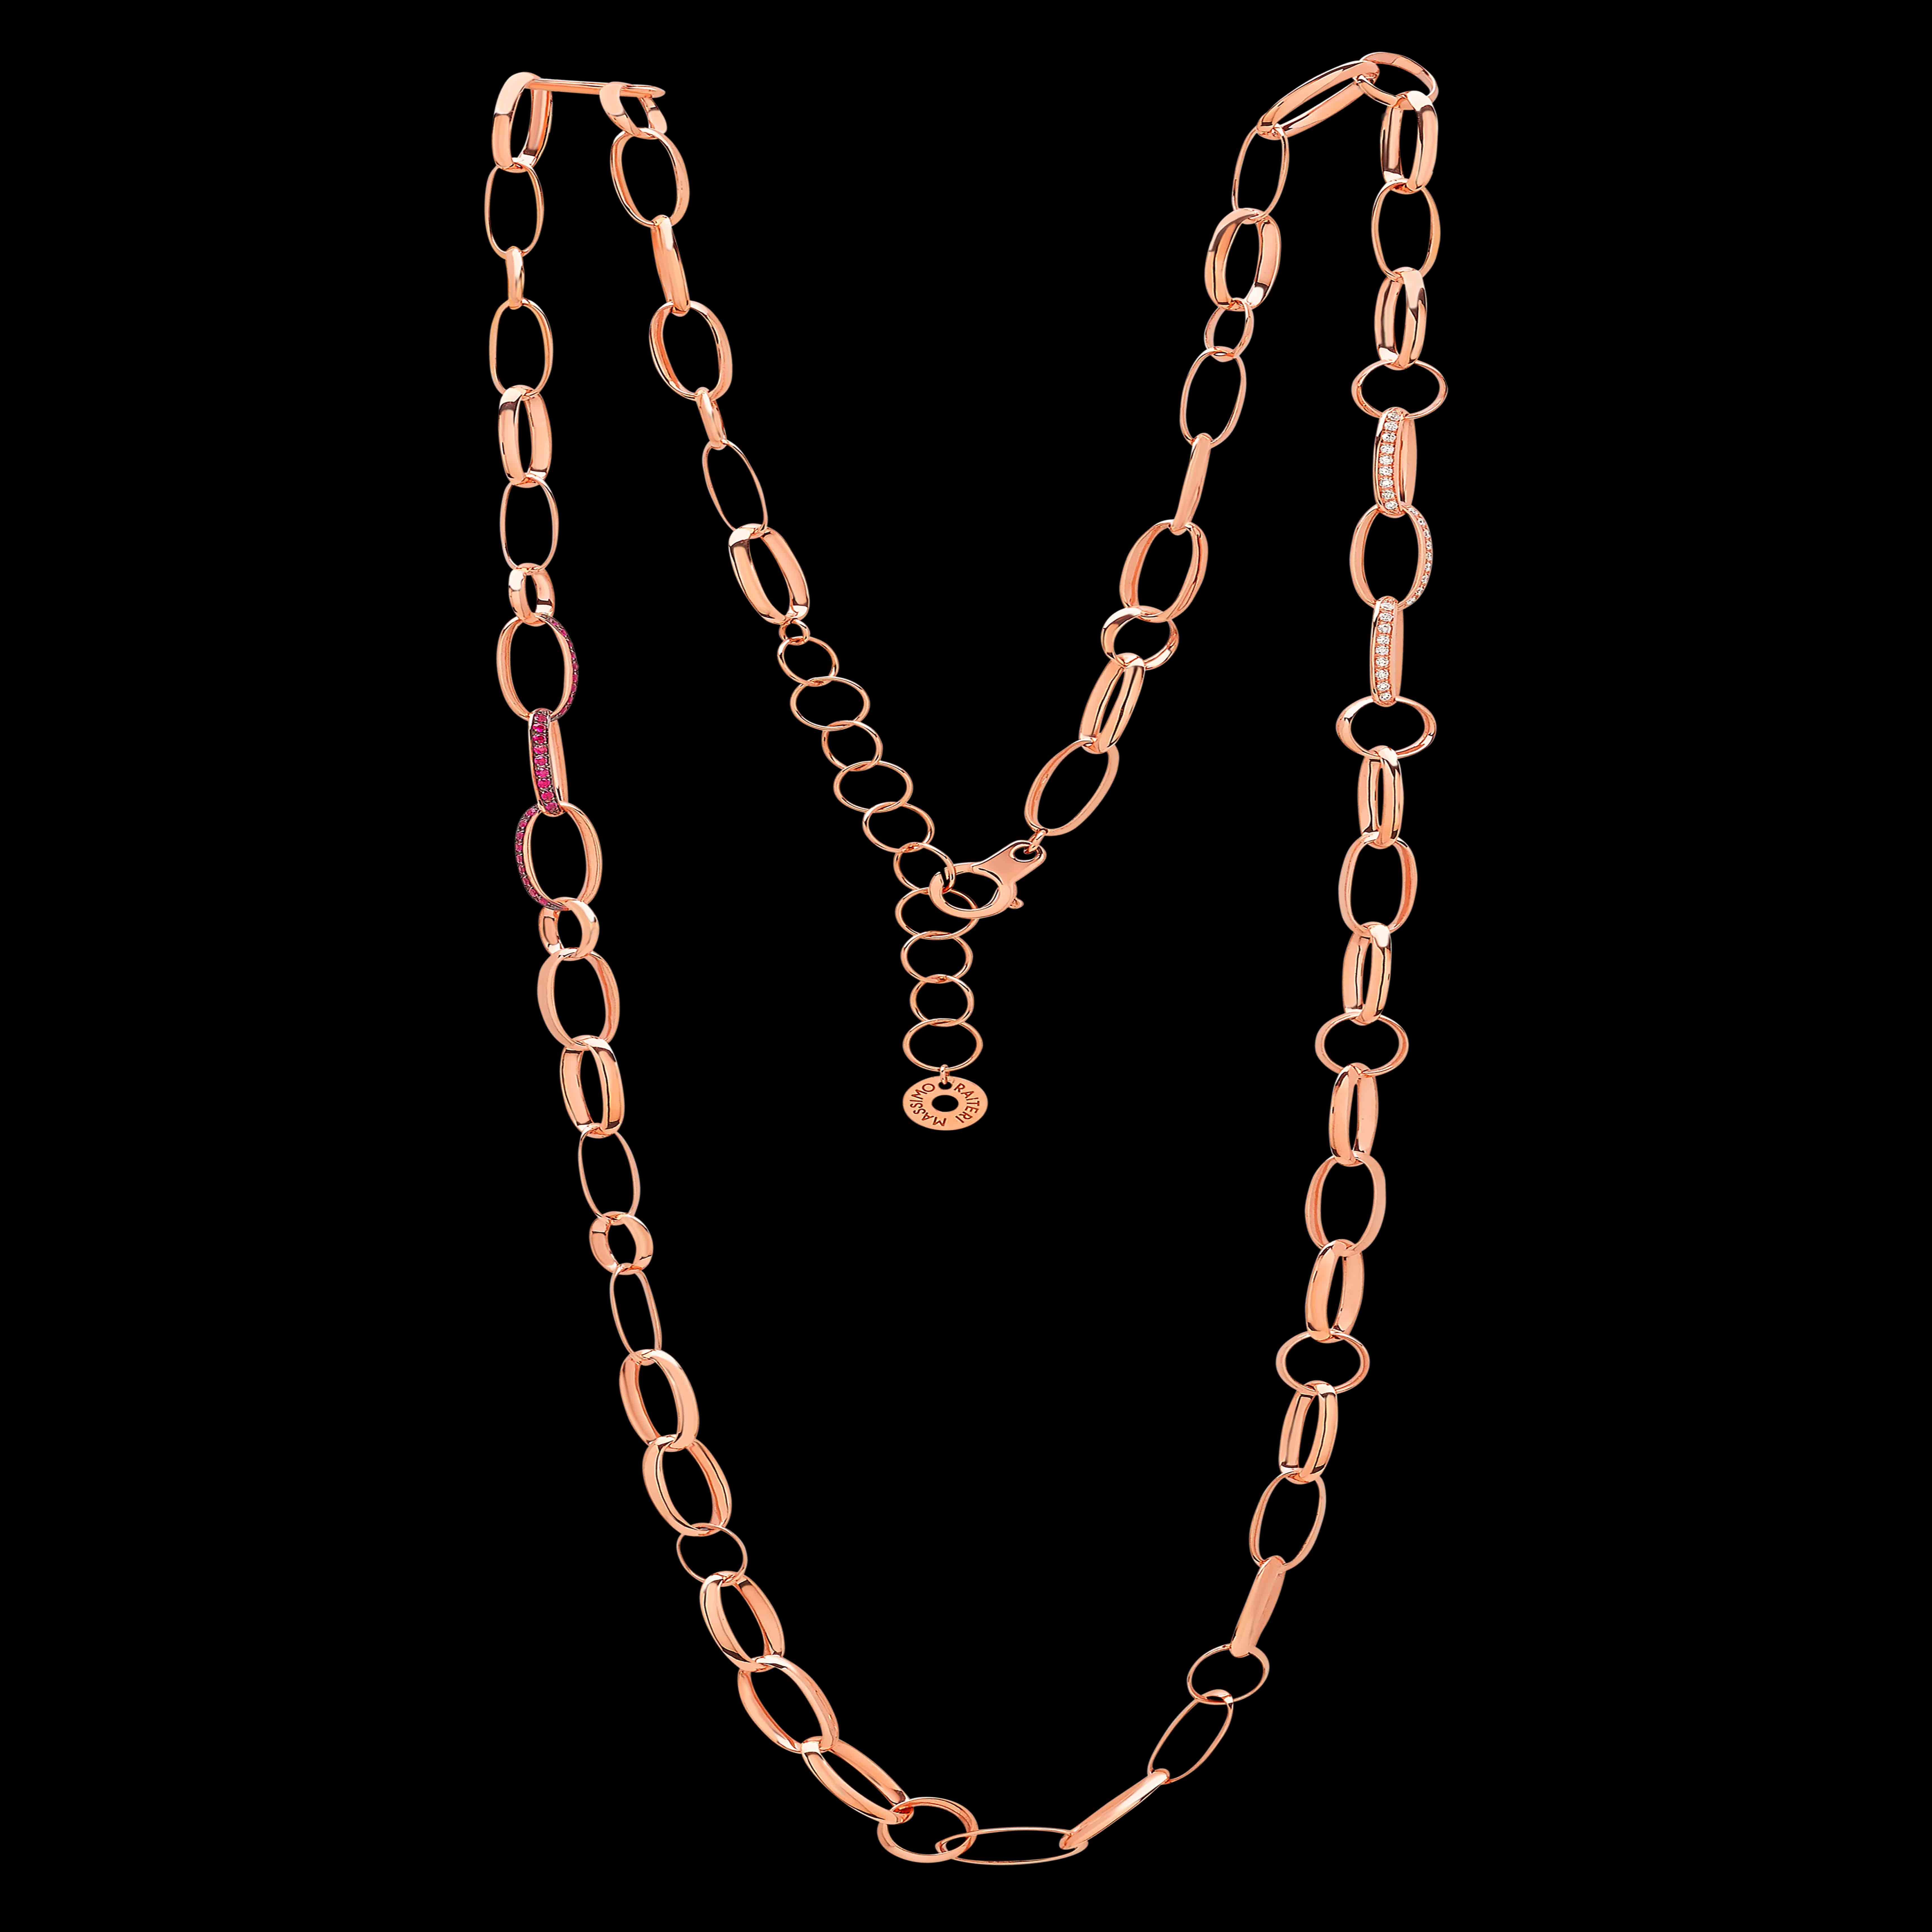 Massimo Raiteri long chain oro gold catene lunghe gioielli jewellery diamonds diamanti ruby rubini